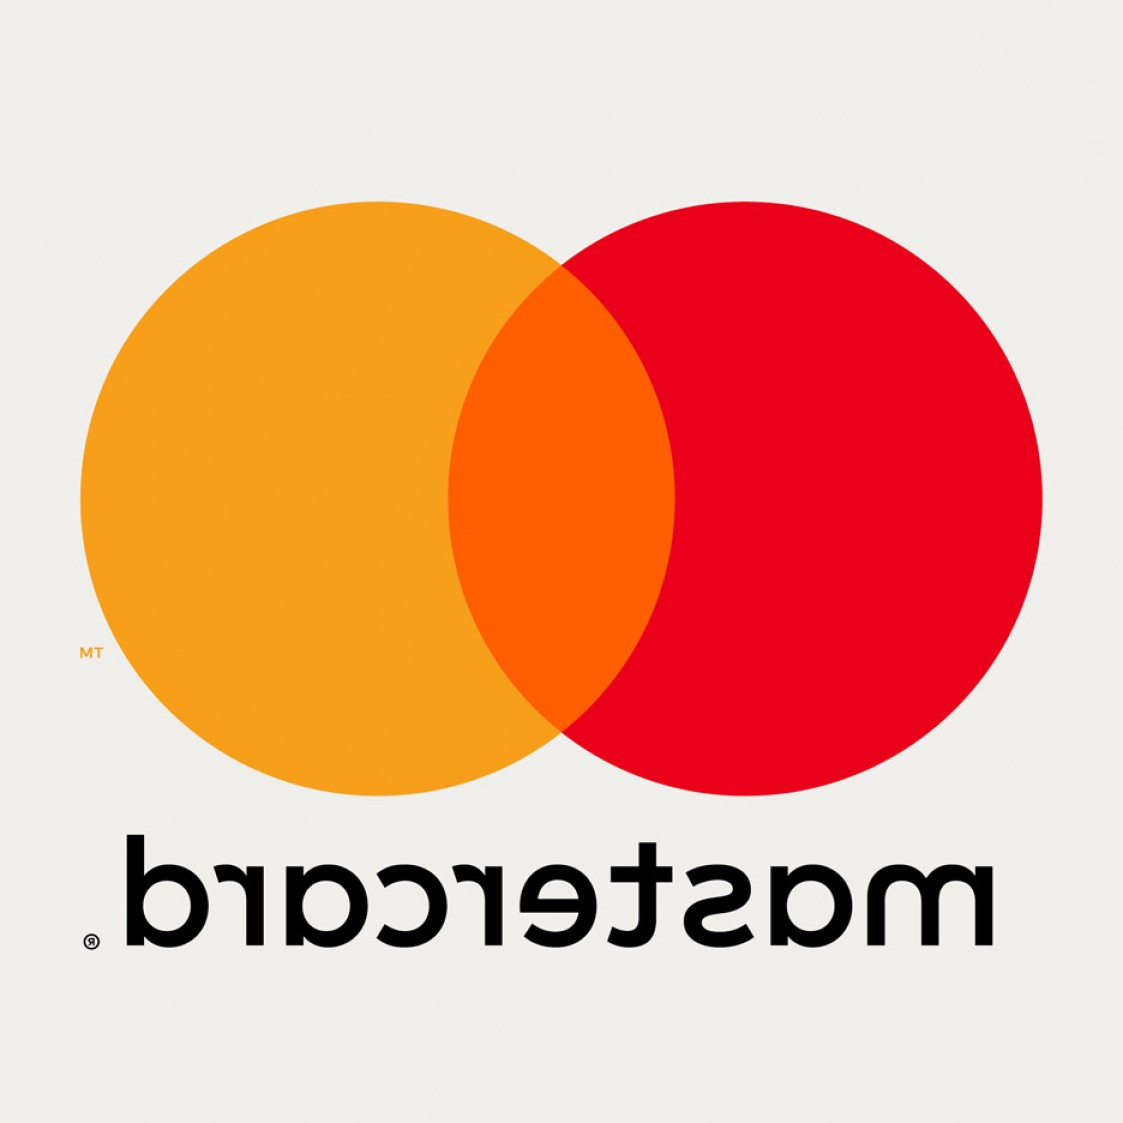 MasterCard Credit Card Logo Vector: Pentagram Brings Mastercard Into The Digital Age With Pared Back Logo Redesign